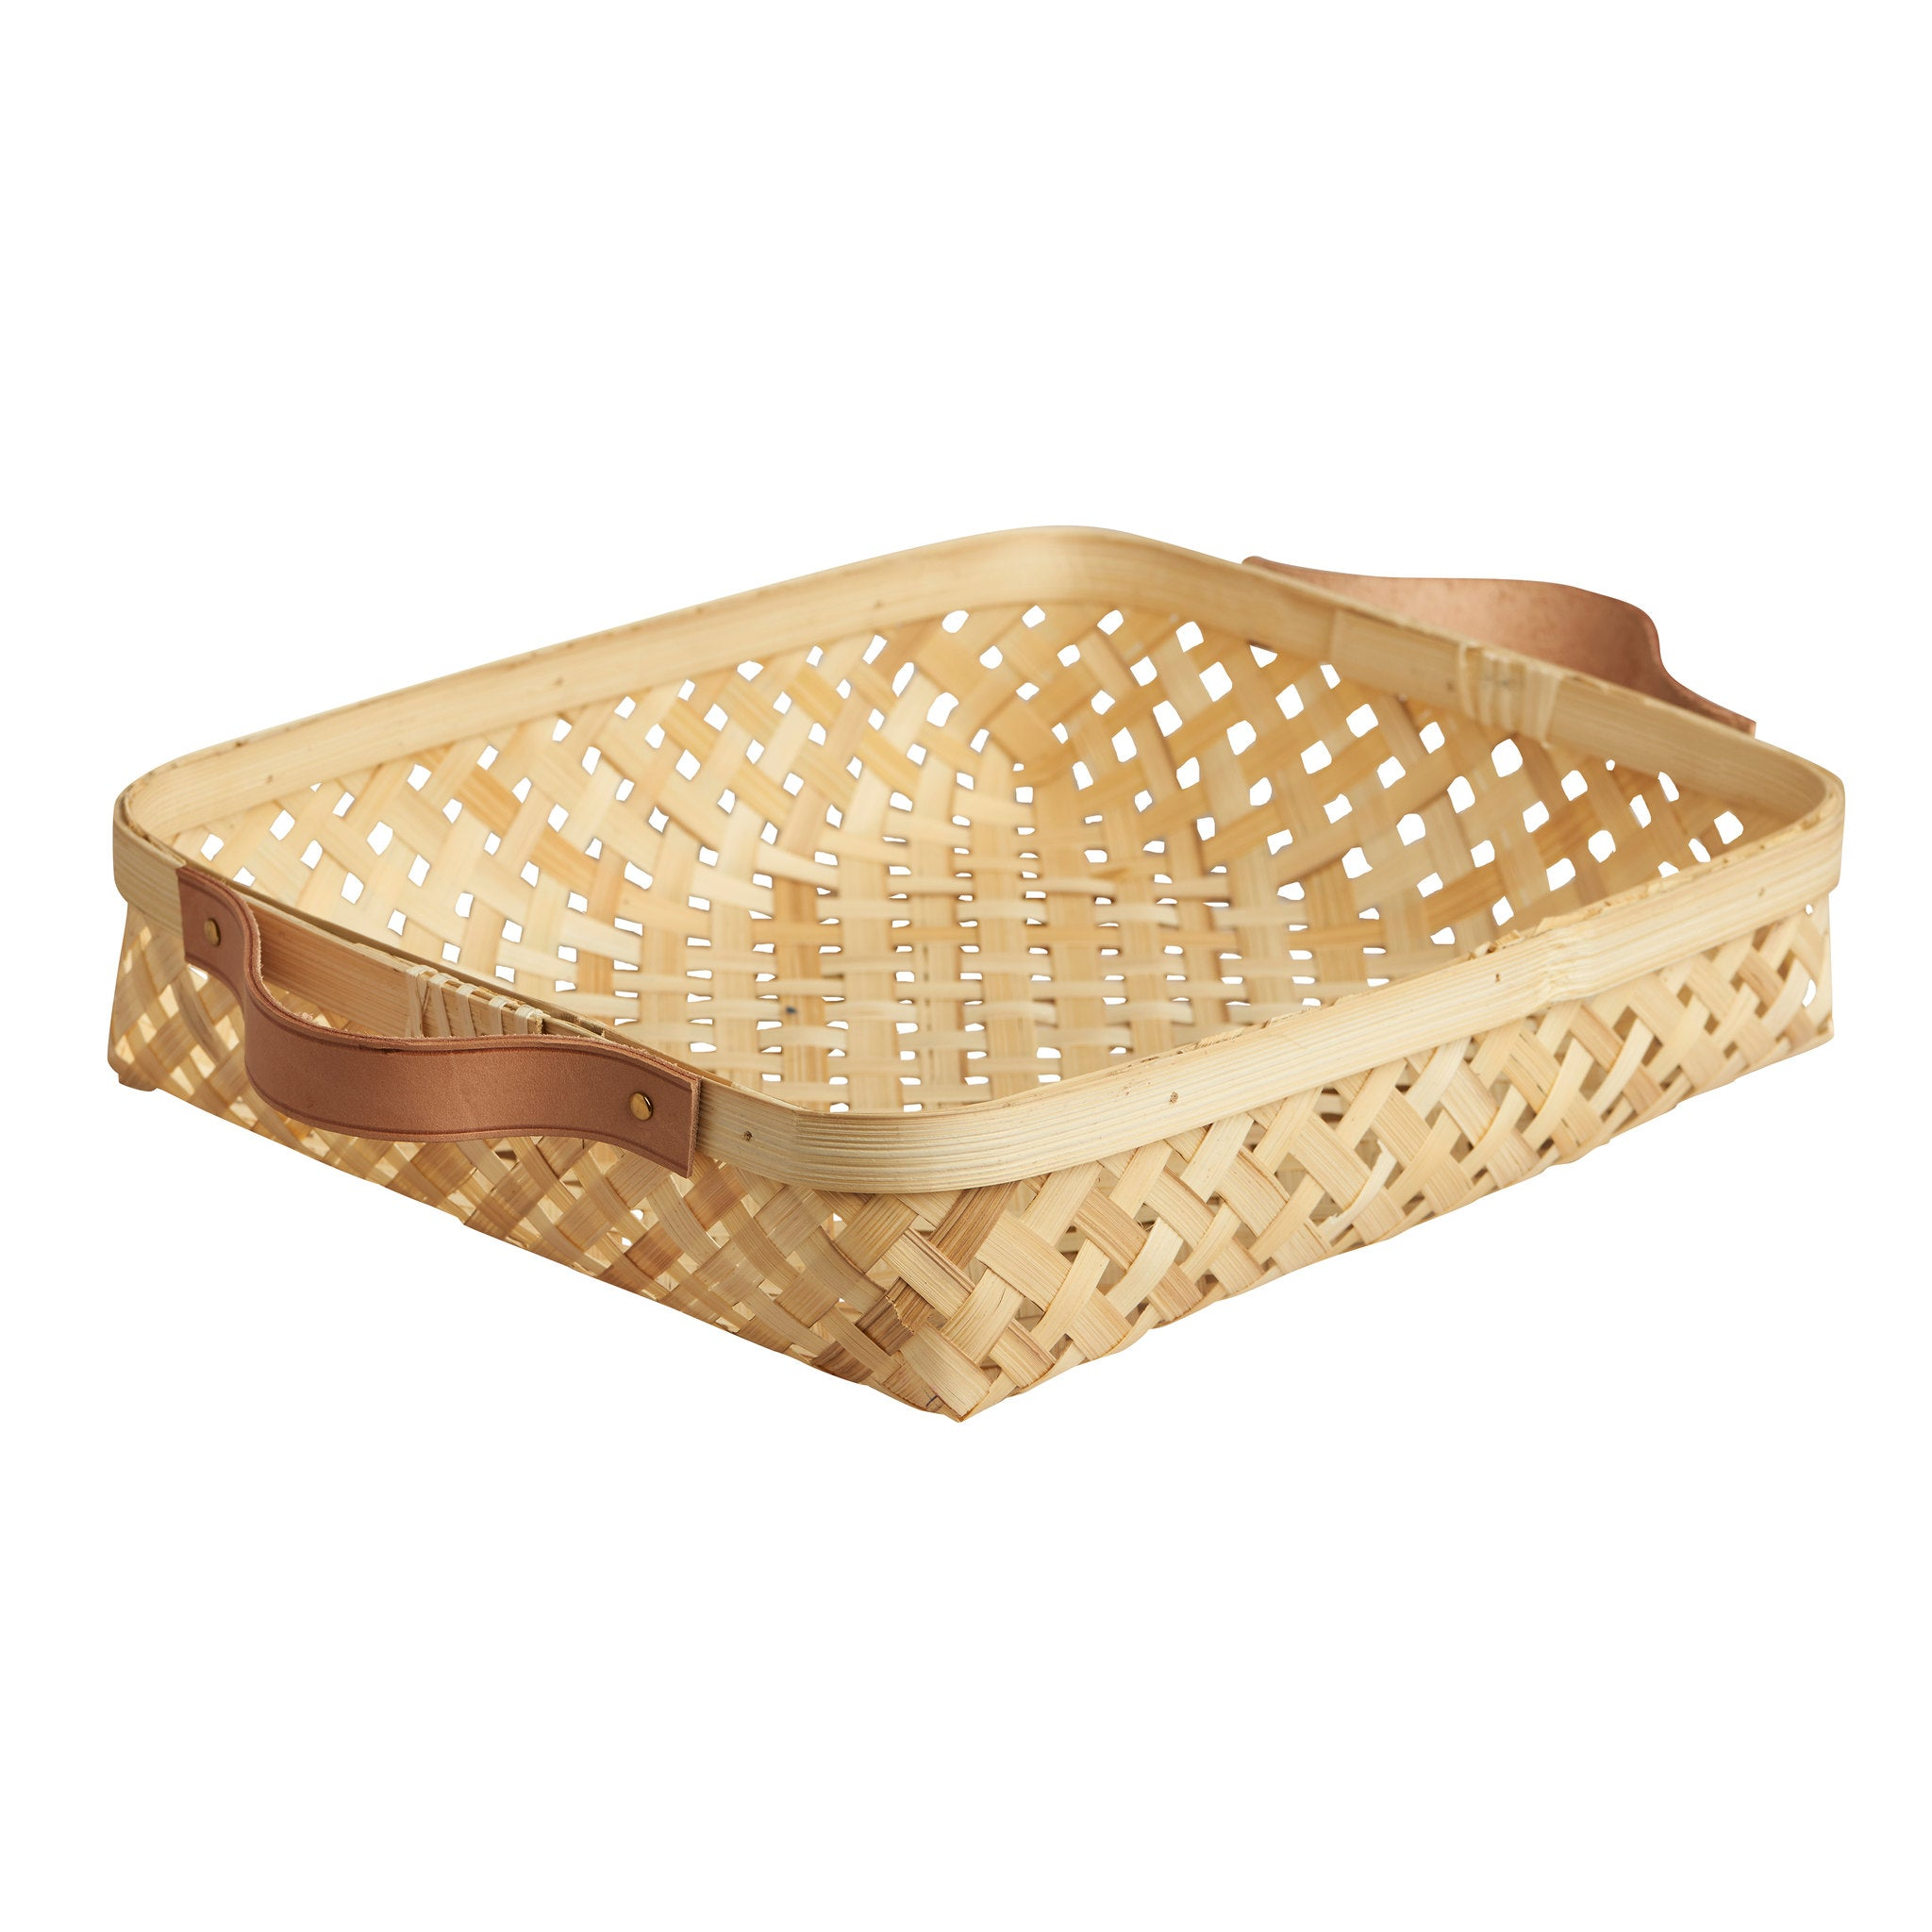 Sporta Bread Basket in Nature Small